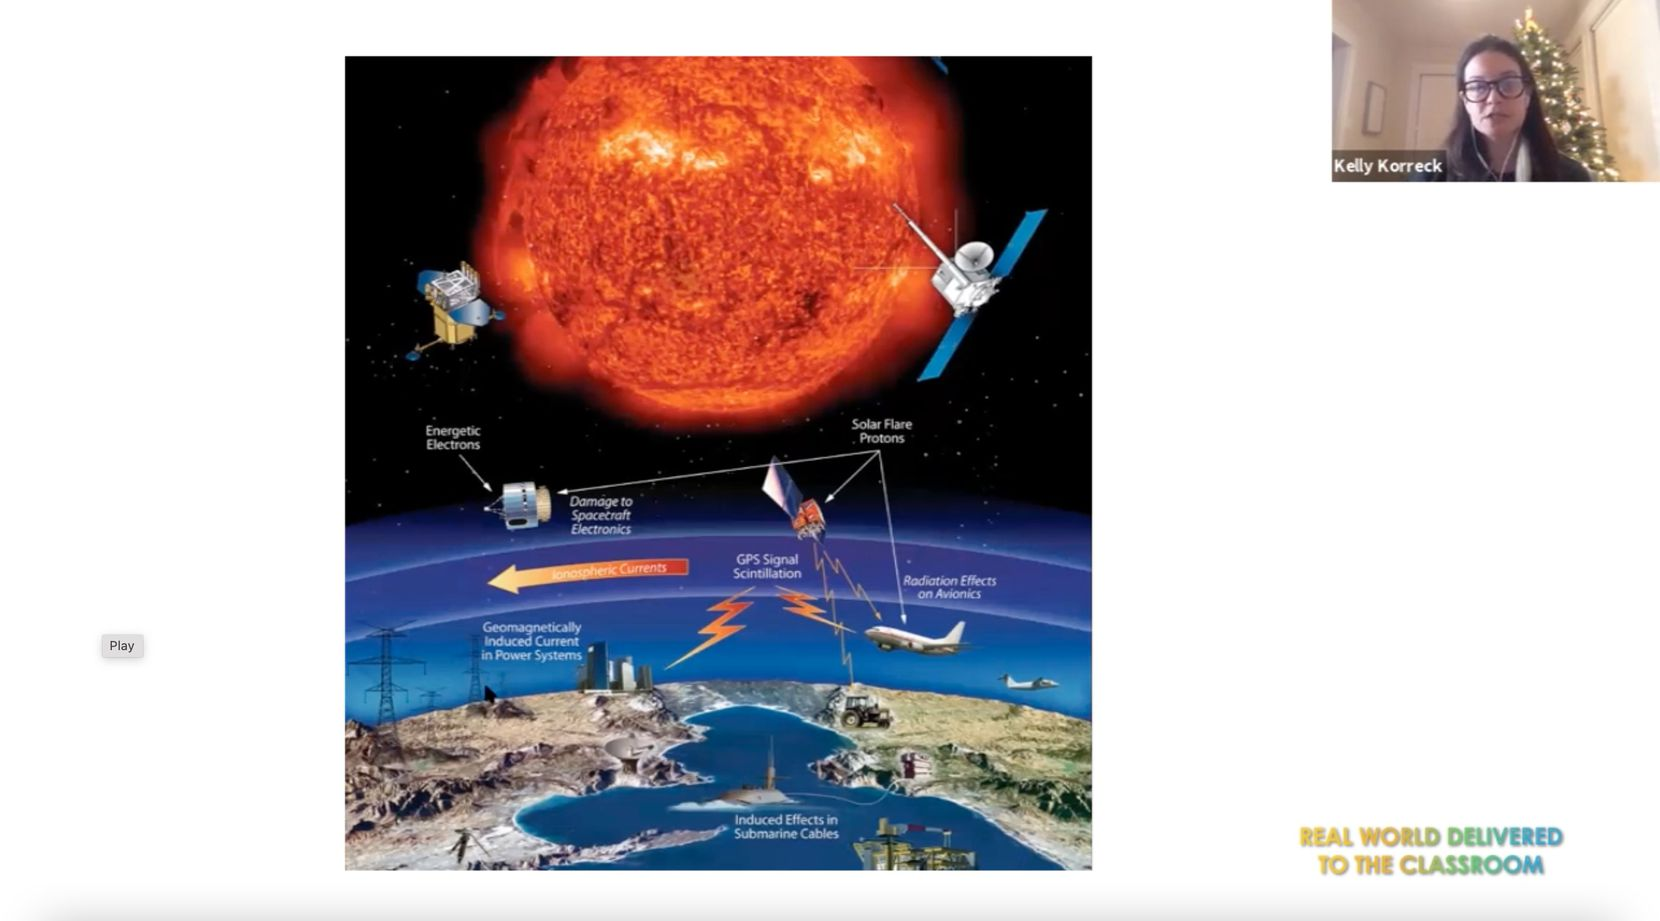 Kelly Korreck, an astrophysicist at the Harvard Smithsonian Center for Astrophysics in Cambridge, Mass., teaches schoolchildren about space exploration in this video from Nepris.